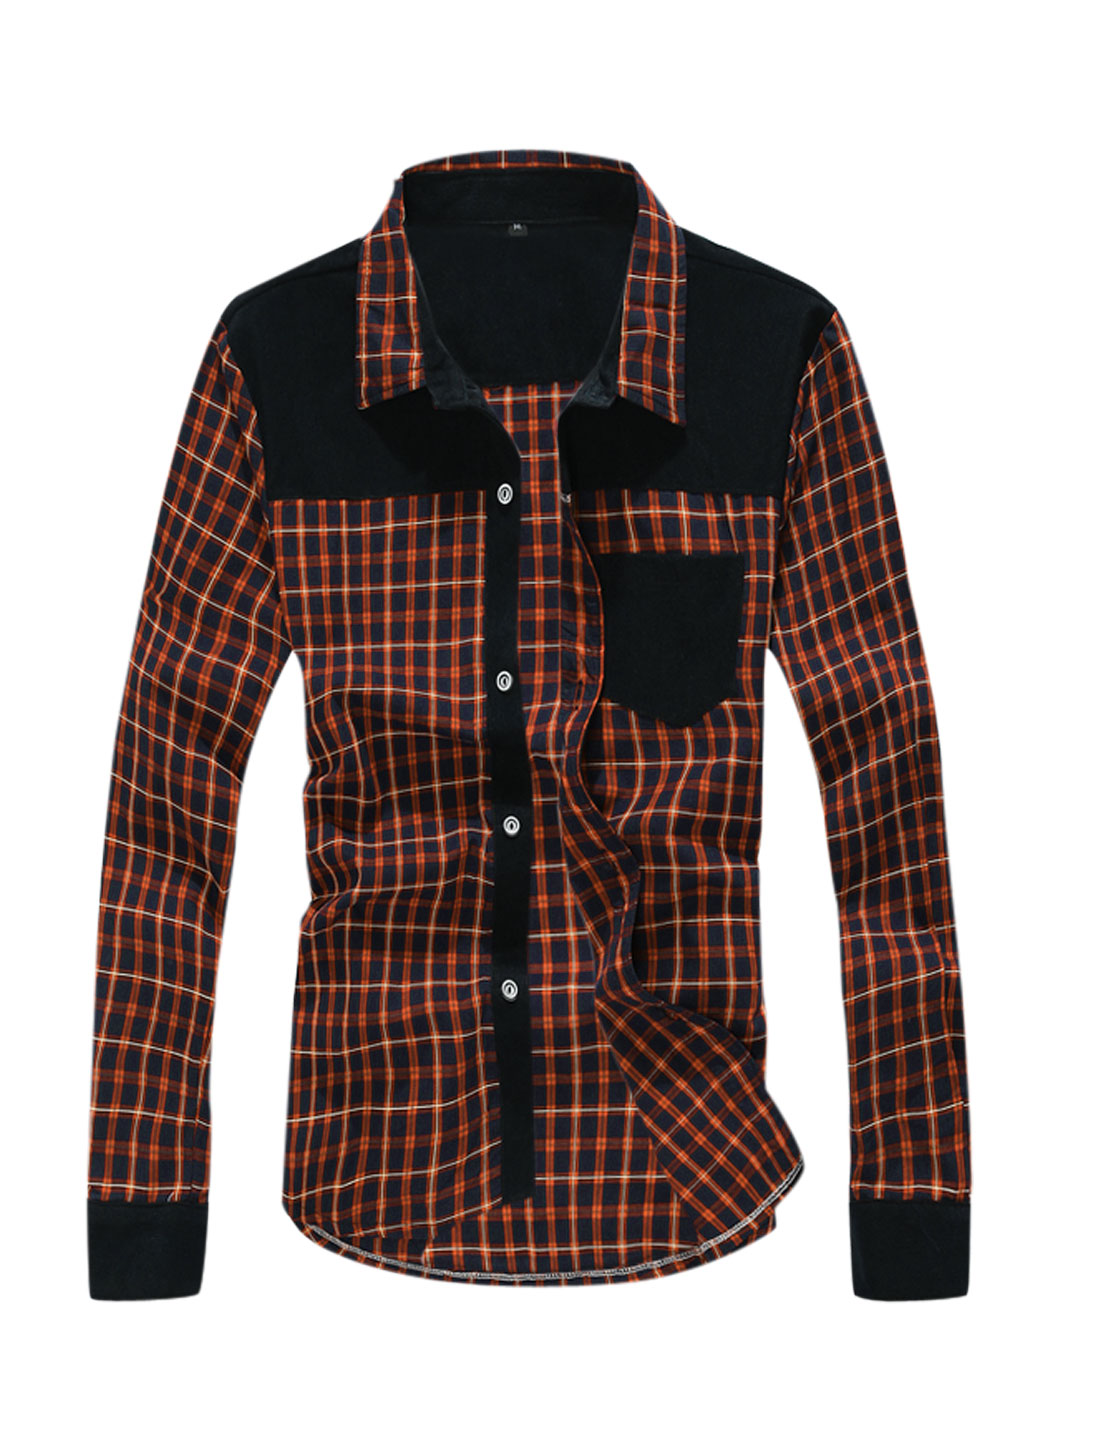 Men Checkered Pattern Corduroy Panel Contrast Shoulder Shirt Orange Navy Blue M